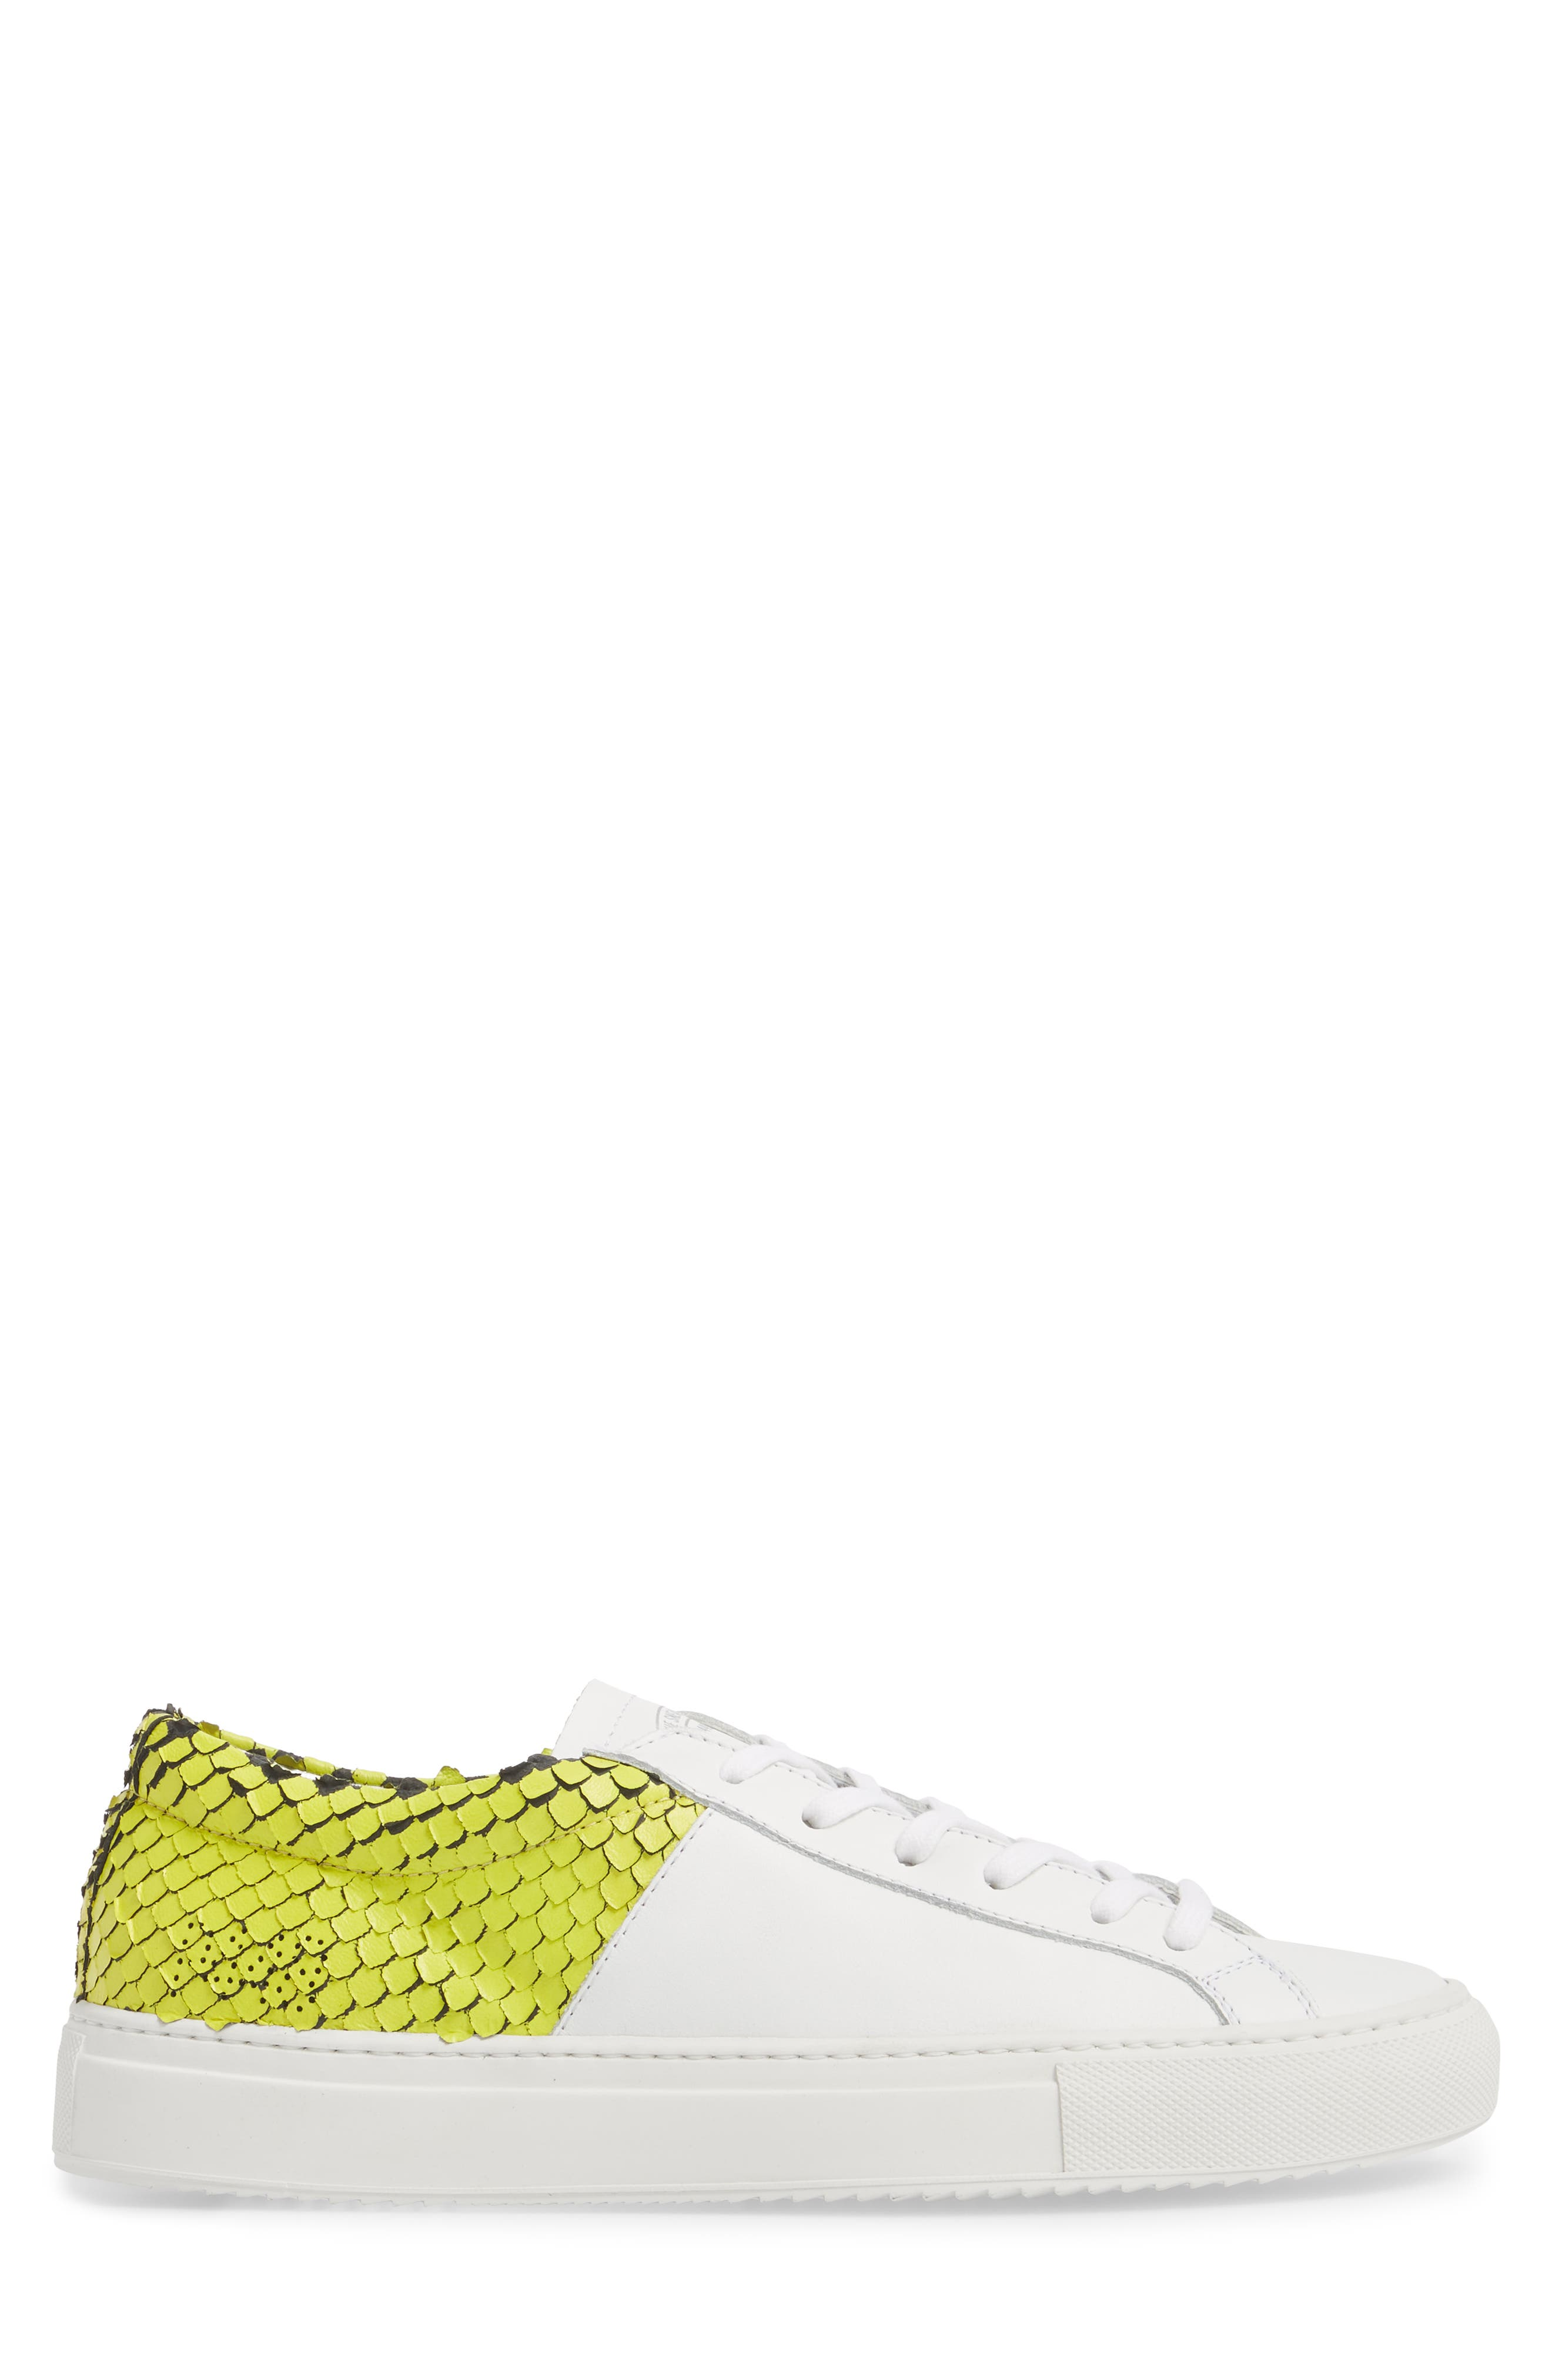 Onec Textured Low Top Sneaker,                             Alternate thumbnail 3, color,                             Python White